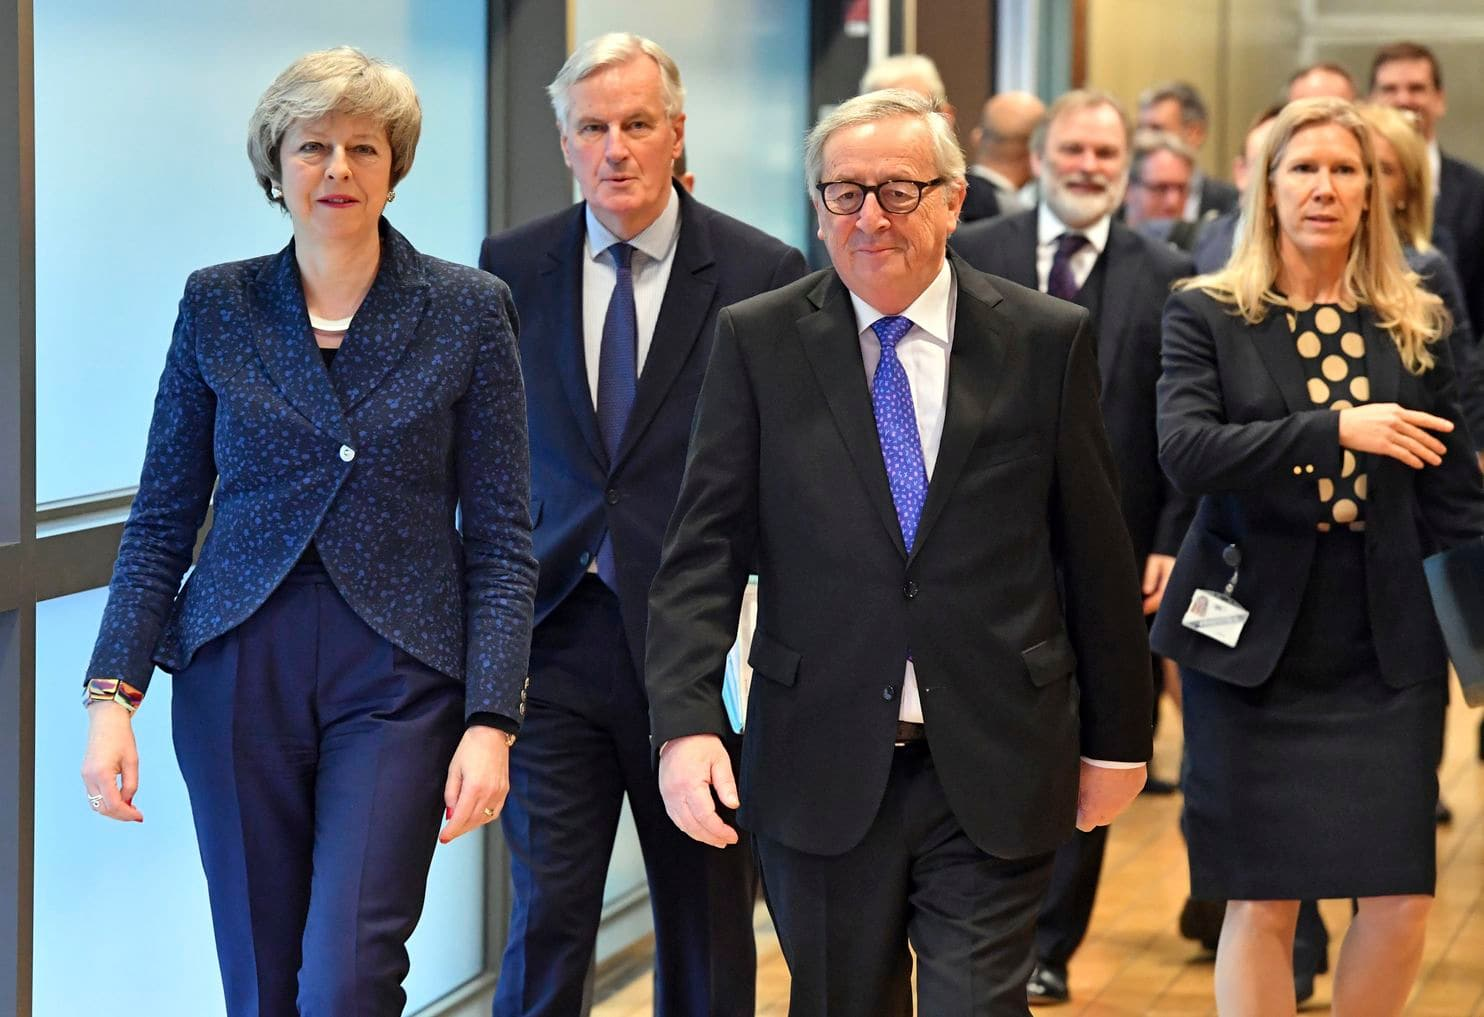 The UK Prime Minister Theresa May is heading to Brussels today for Brexit talks with the EU's Jean-Claude Juncker…